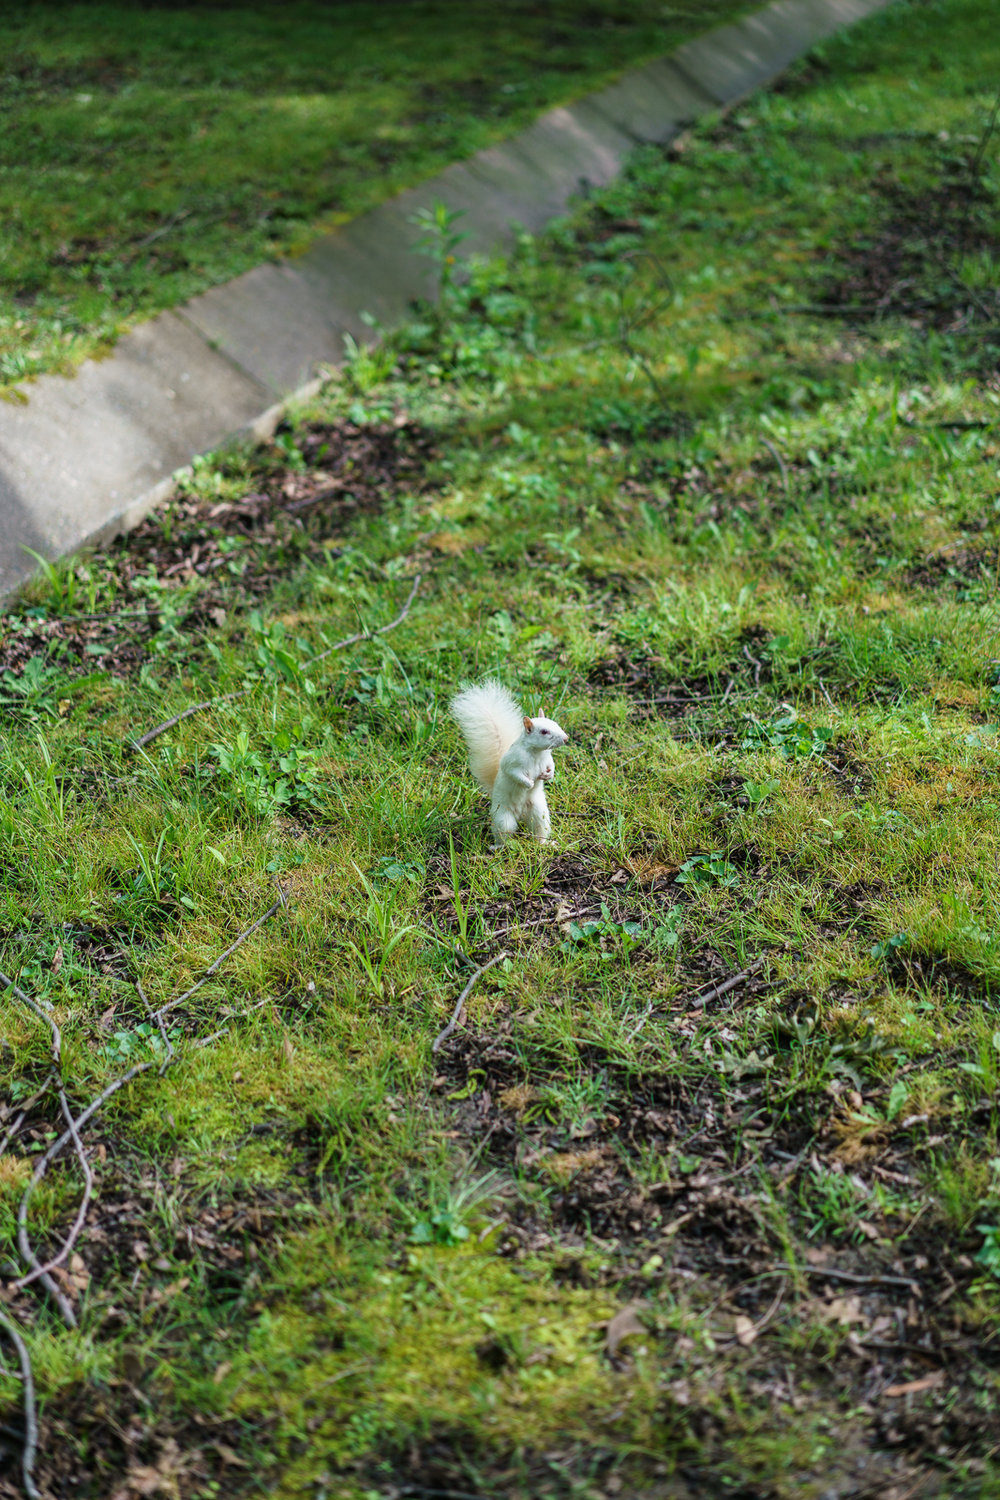 White Squirrel, Olney, Illinois, 2016 © Nate Larson